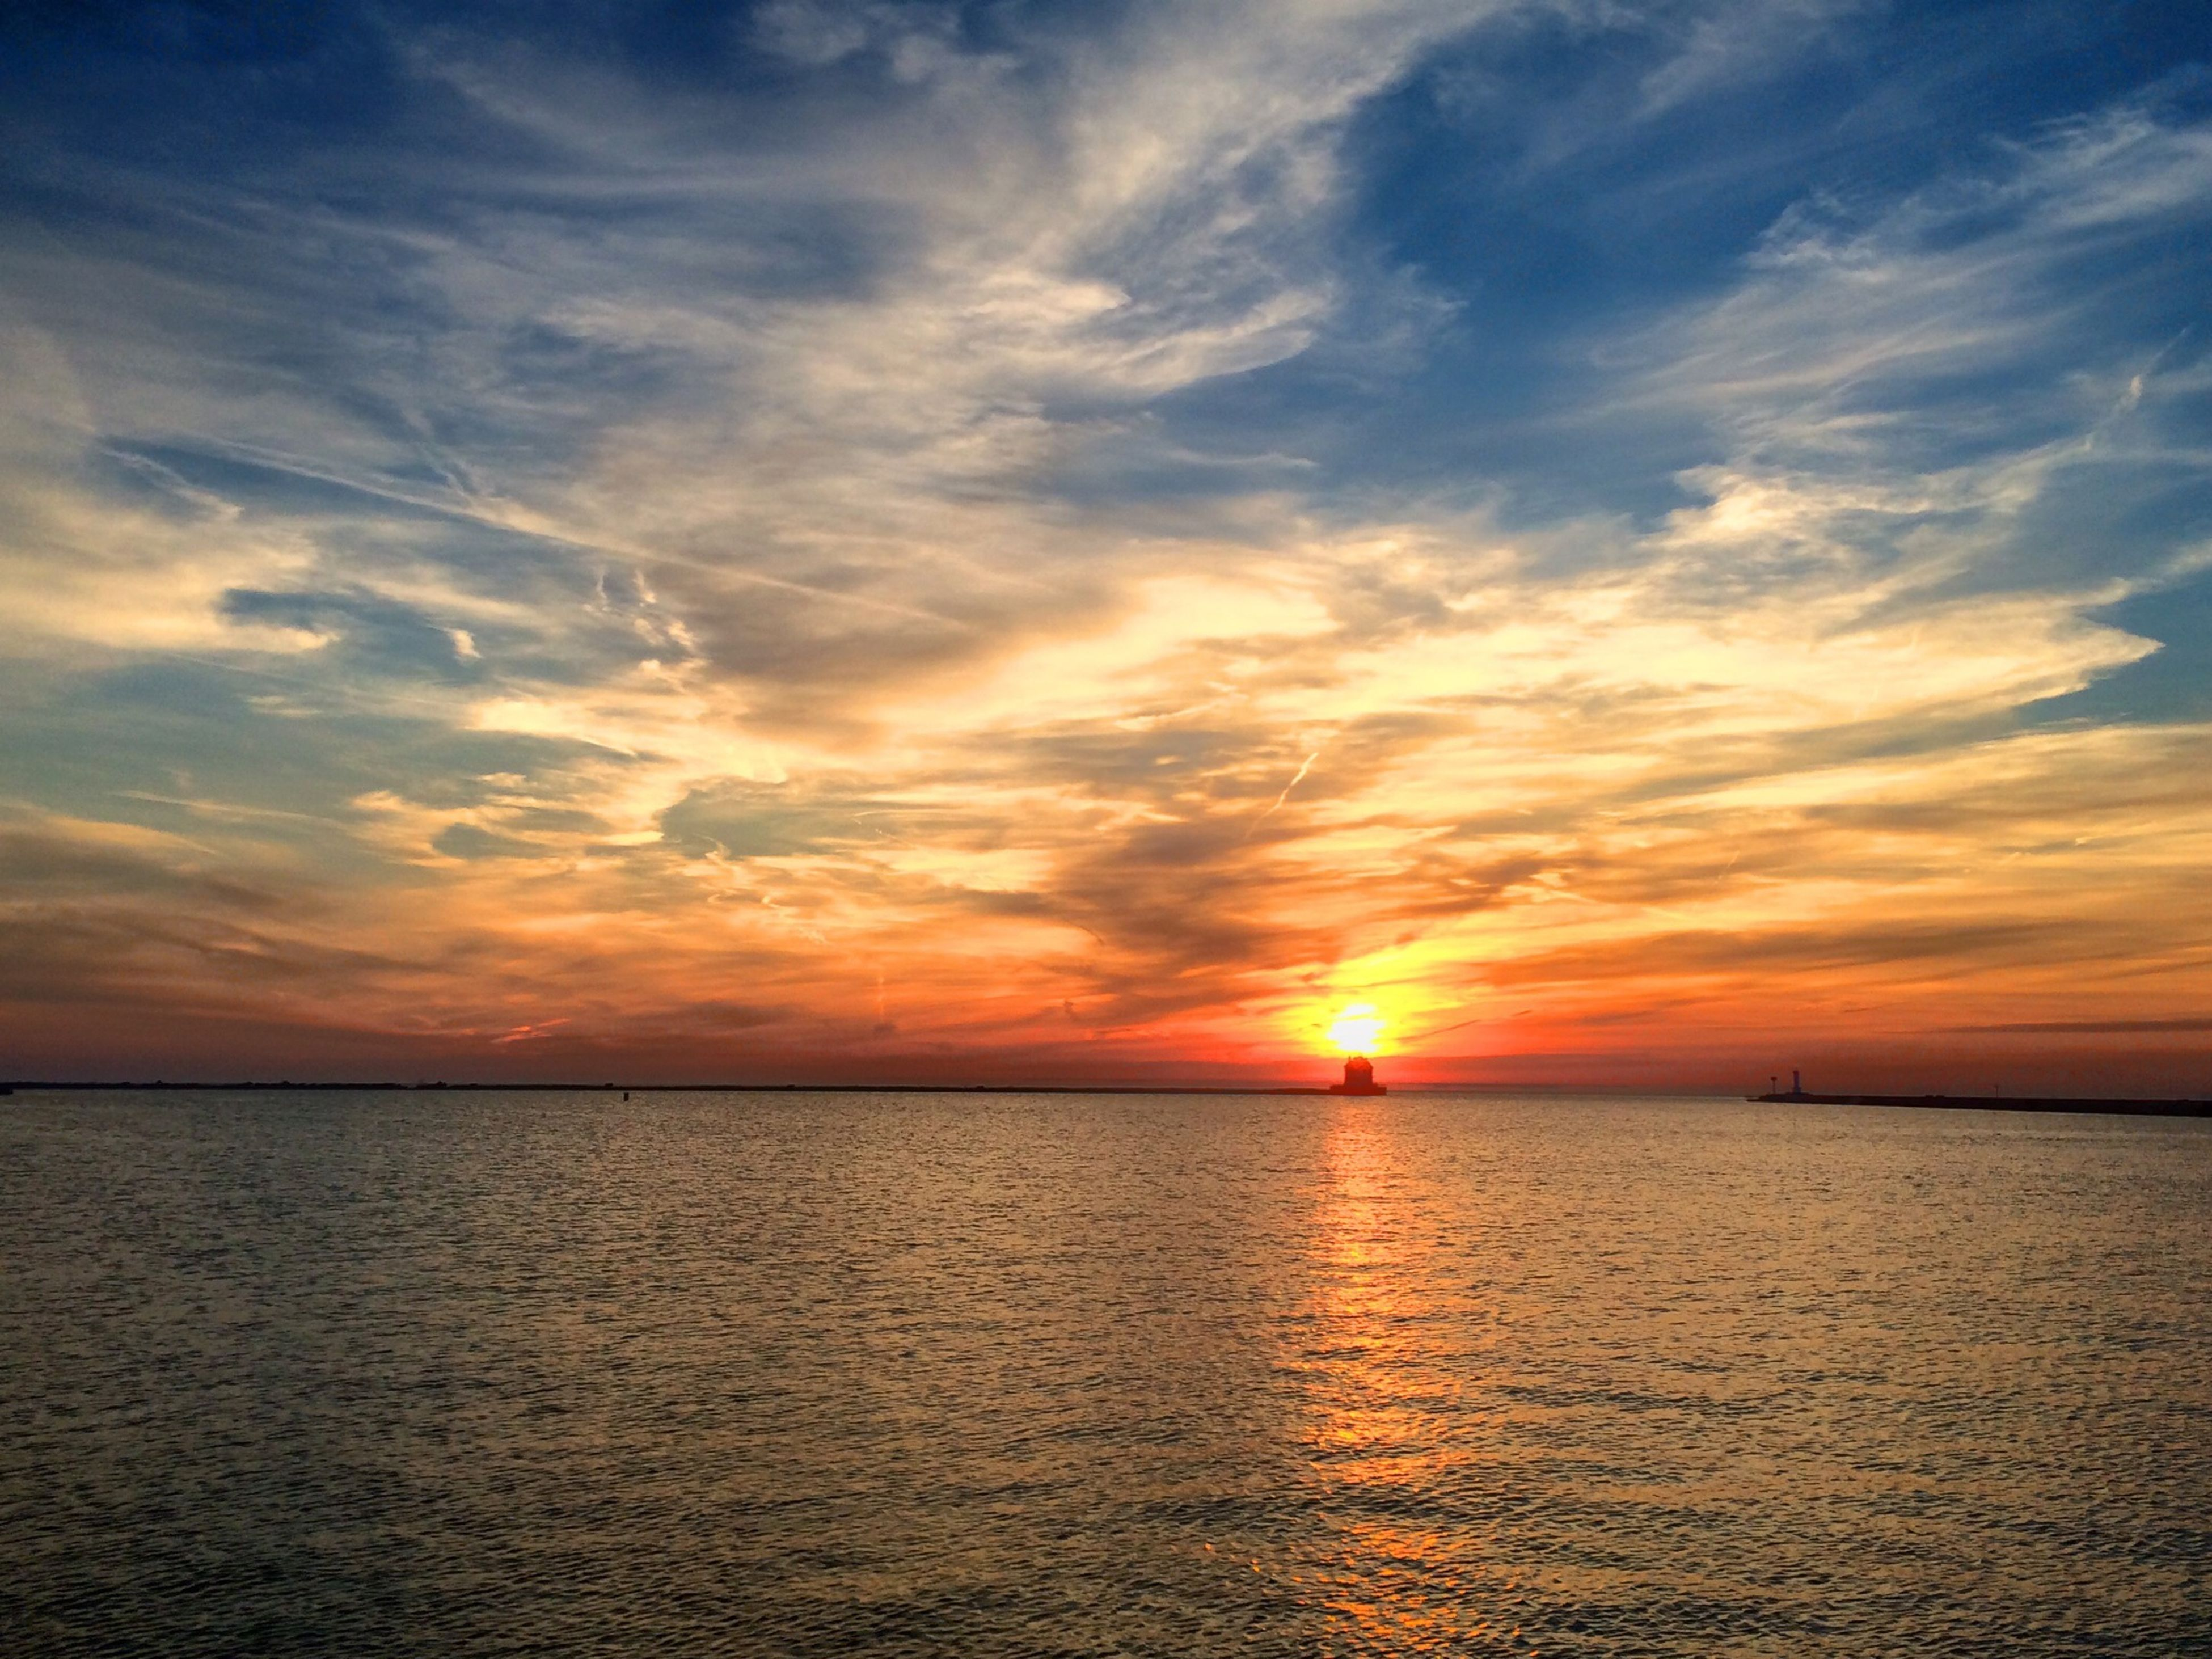 sunset, sea, water, scenics, tranquil scene, waterfront, tranquility, beauty in nature, sky, horizon over water, orange color, sun, idyllic, nature, cloud - sky, reflection, cloud, rippled, sunlight, dramatic sky